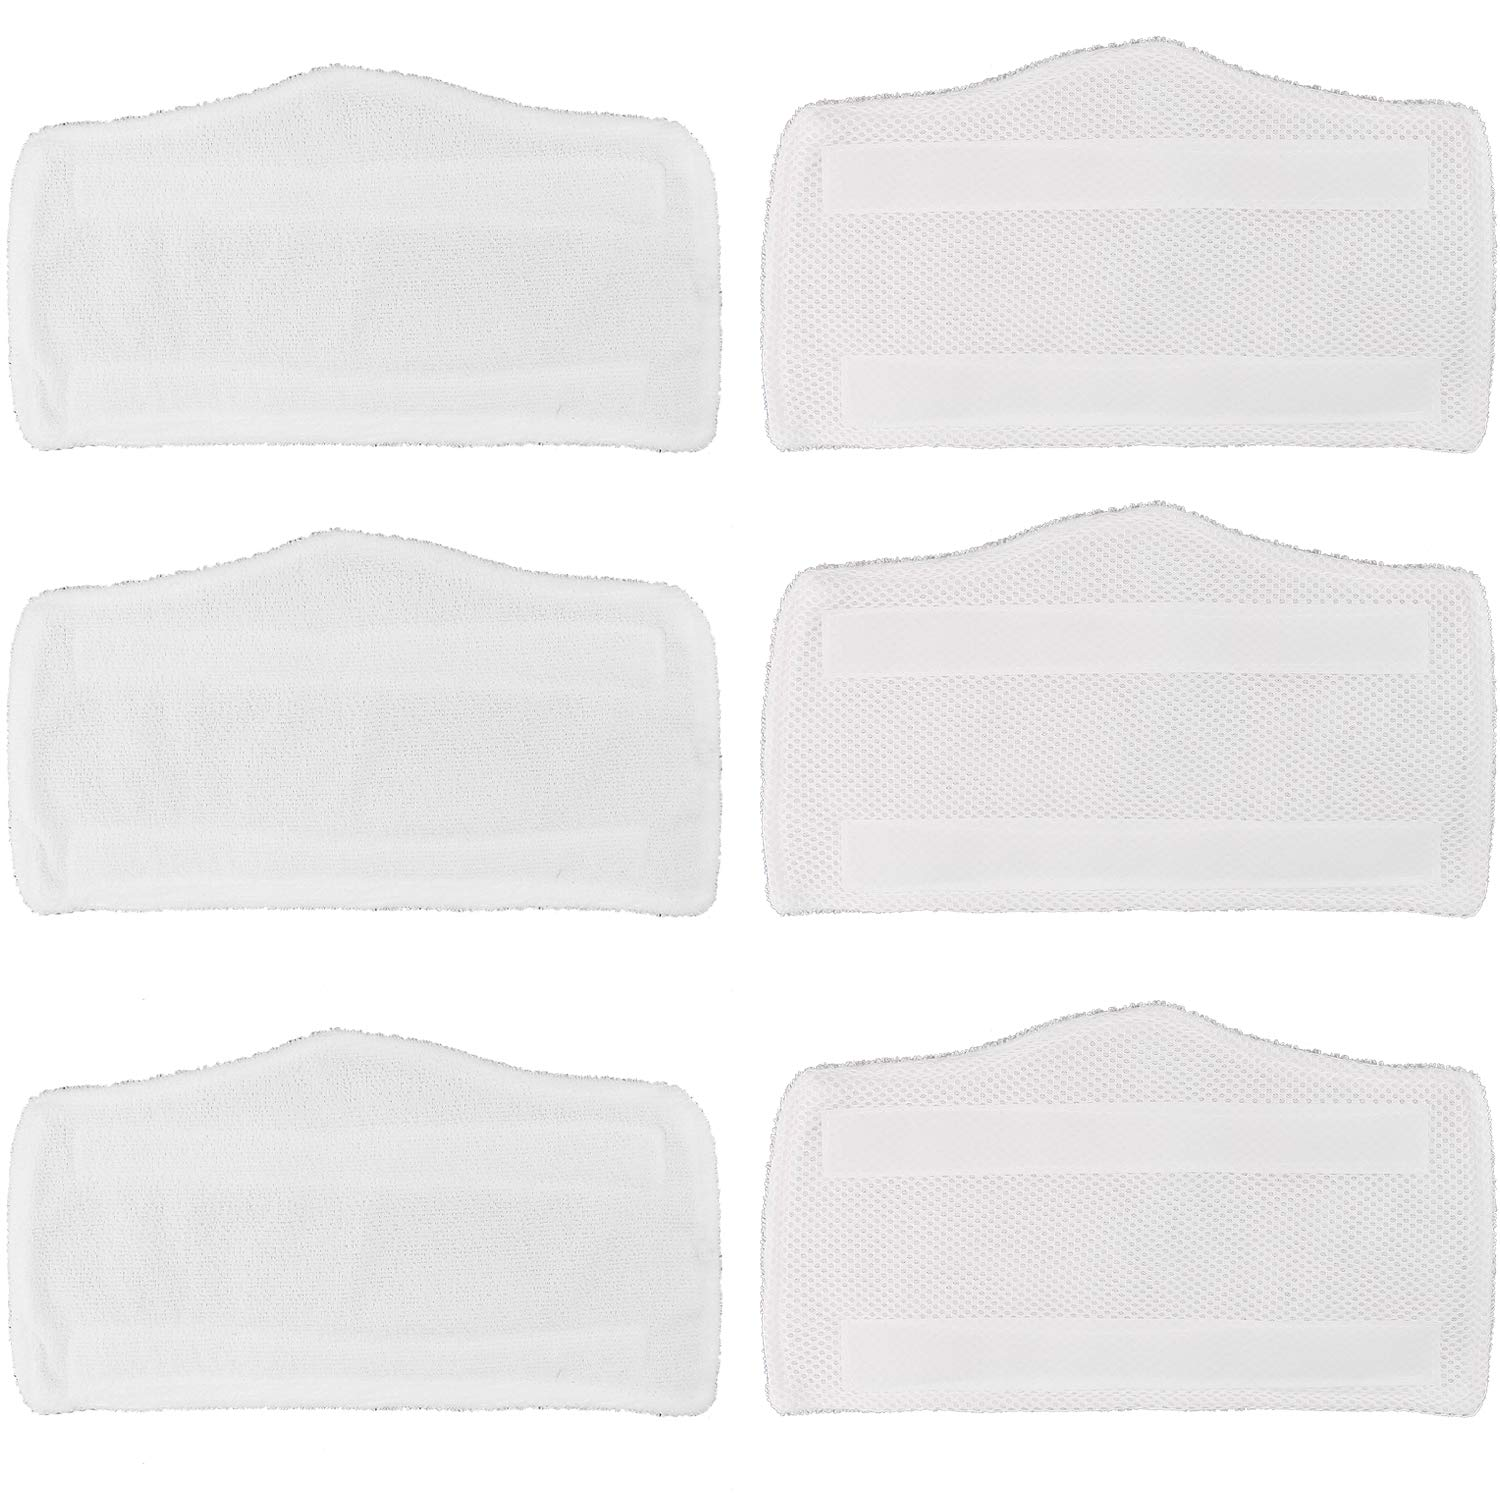 Tidy Monster 6 Pack Microfiber Replacement Washable Cleaning Pads for Shark Steam & Spray Mop S3101 S3202 S3250 S3251 SK410 SK435CO SK460 SK140 SK141